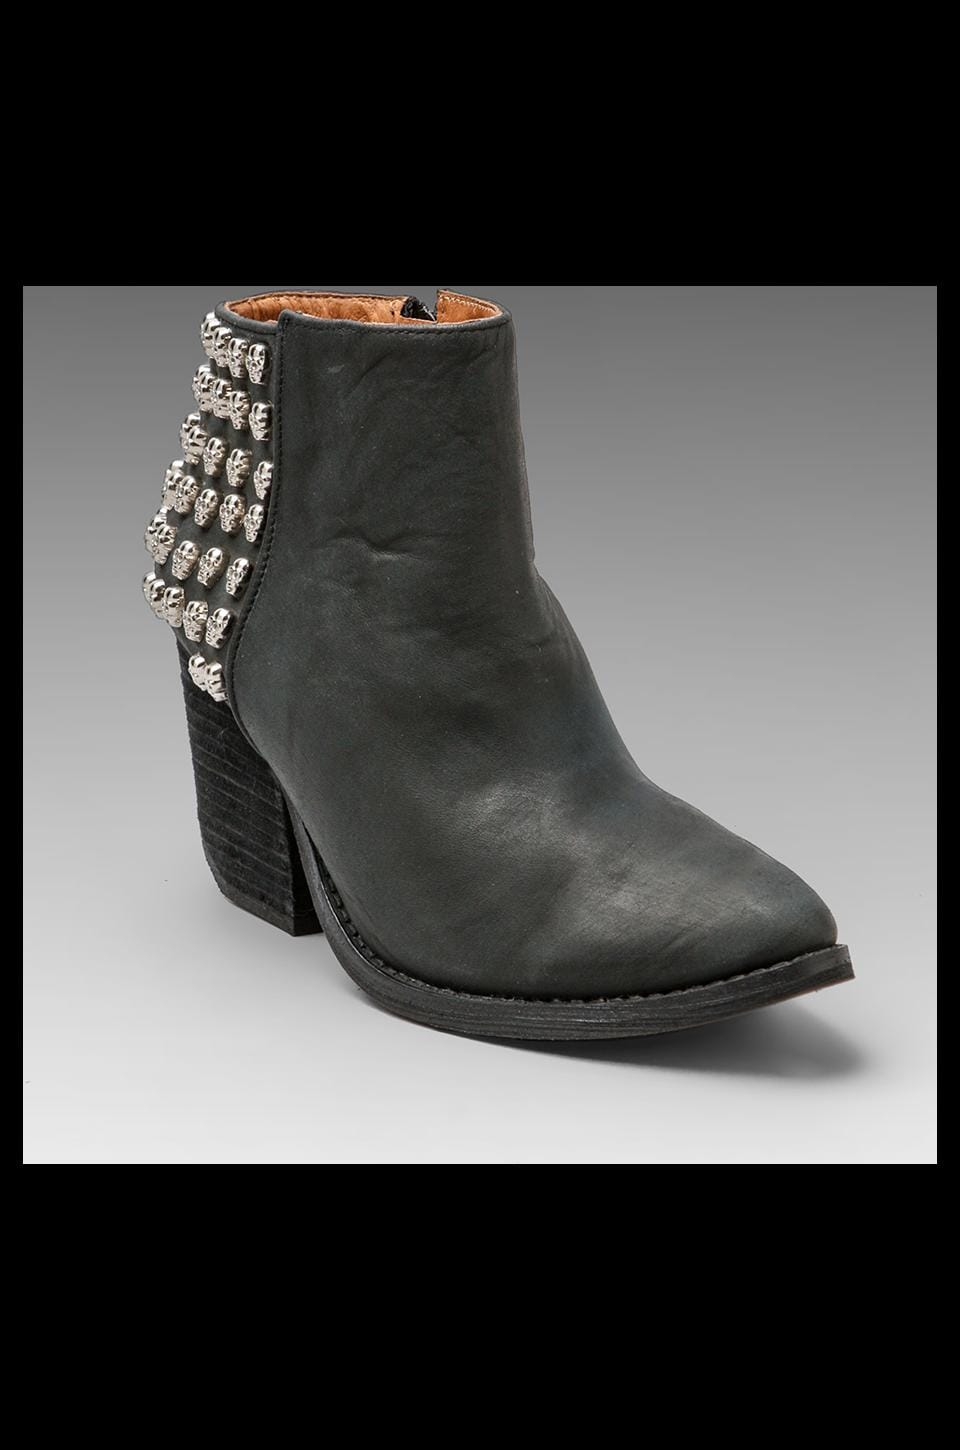 Jeffrey Campbell DOA in Black/Silver